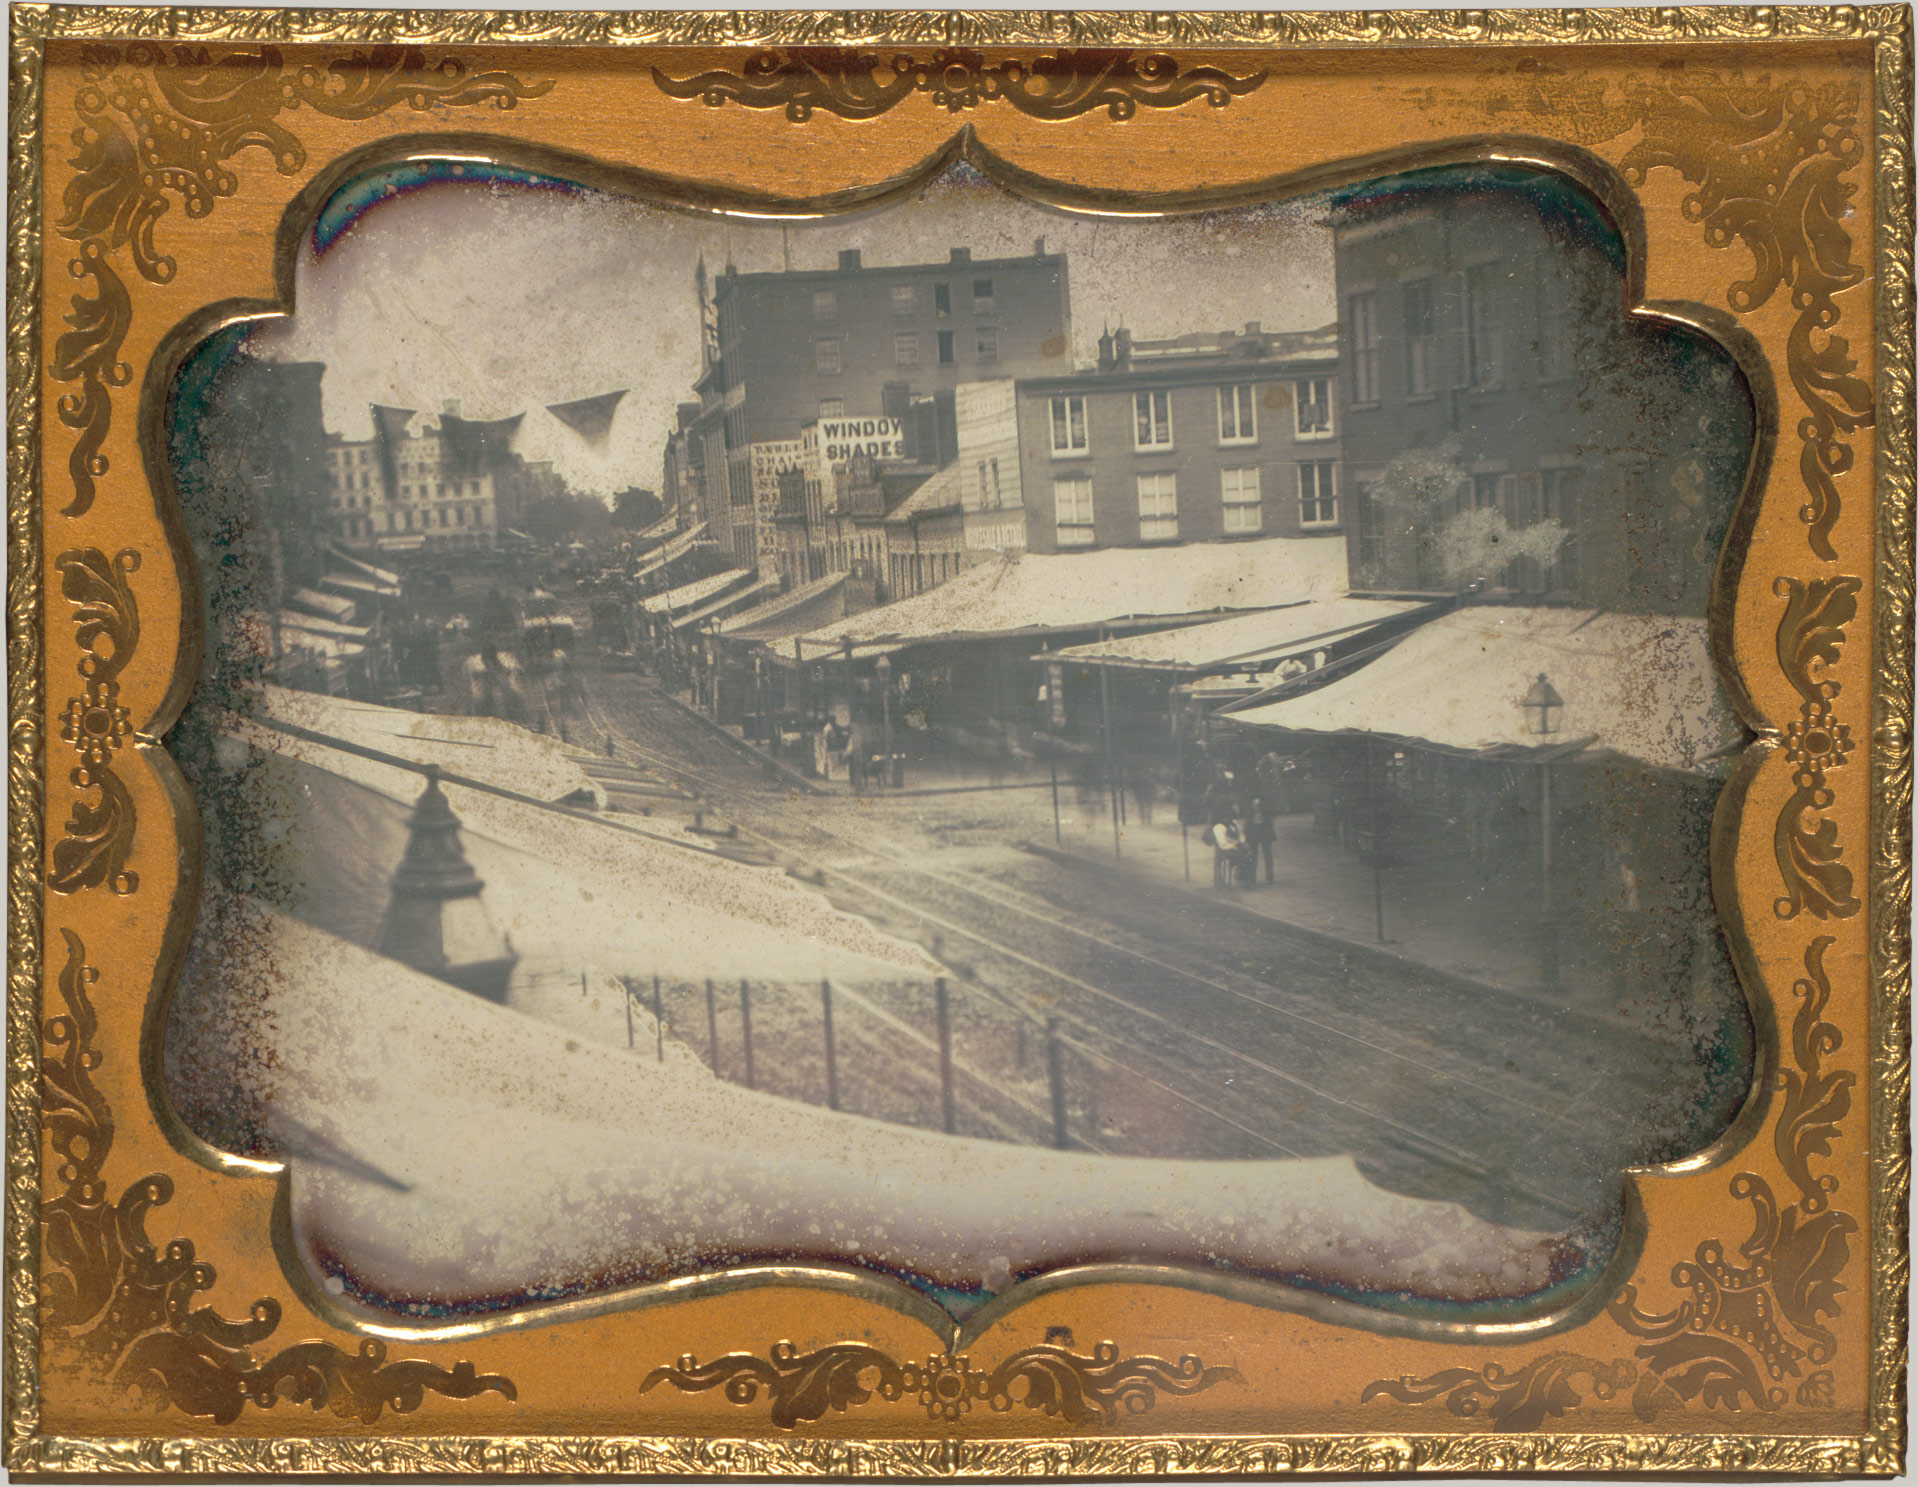 Daguerreotype of Chatham Street looking toward Chatham Square, 1853-1855, artist unknown (image from http://www.metmuseum.org/toah/works-of-art/2005.100.173/ Gilman Collection, Gift of The Howard Gilman Foundation, 2005)